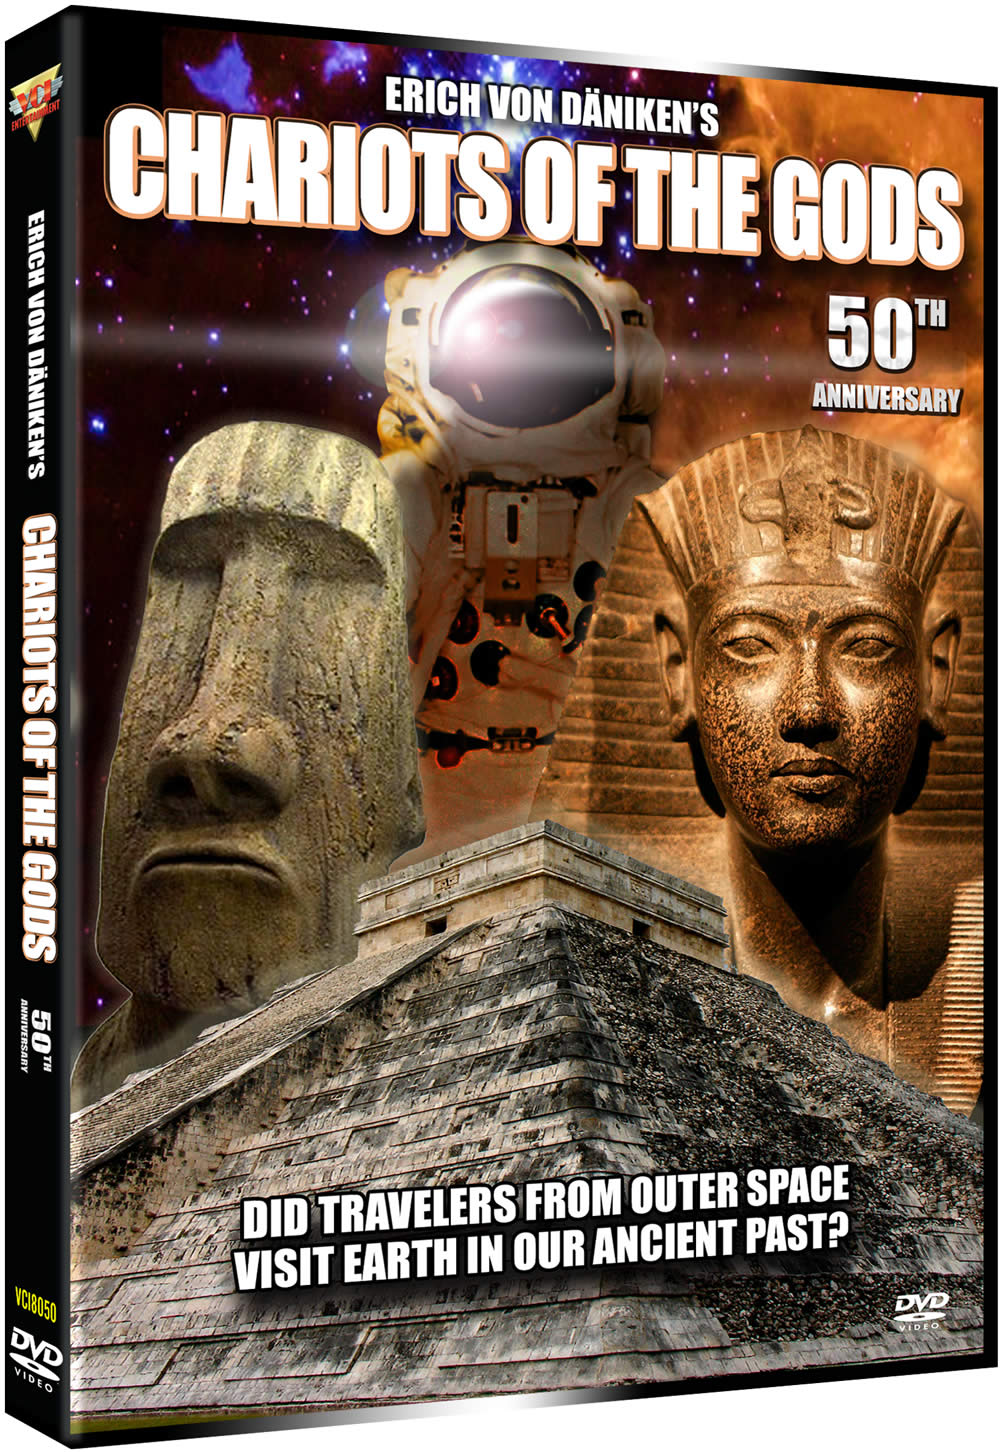 chariots-of-the-gods-50th